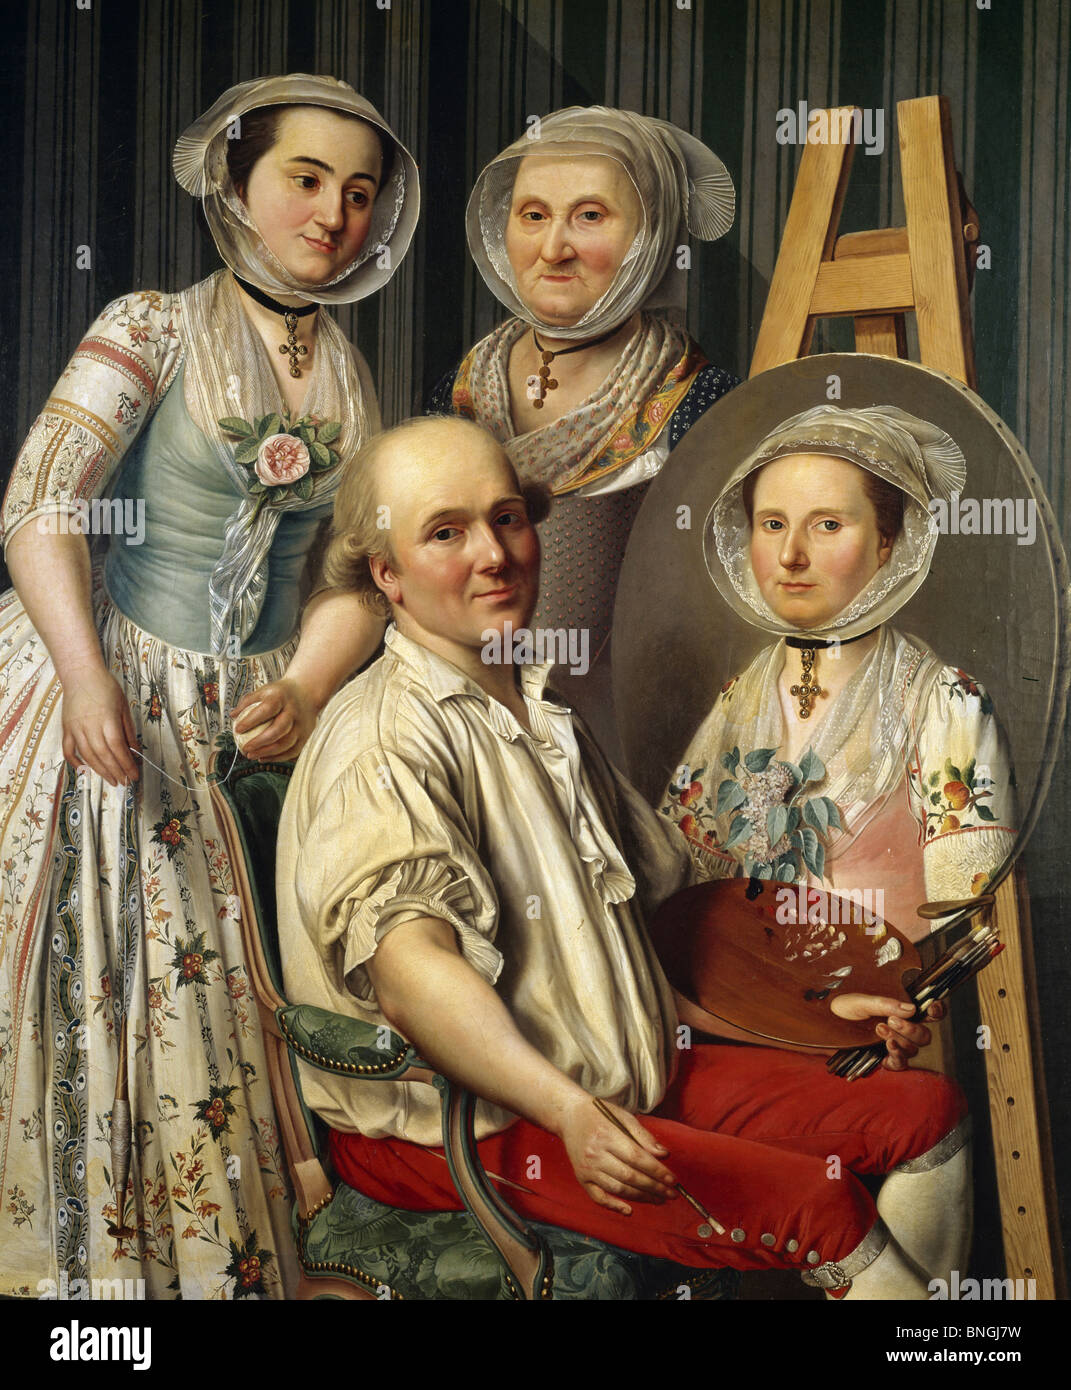 The Artist and his Family by Antoine Raspal, (1738-1811), France, Arles, Musee des Beaux Arts - Stock Image